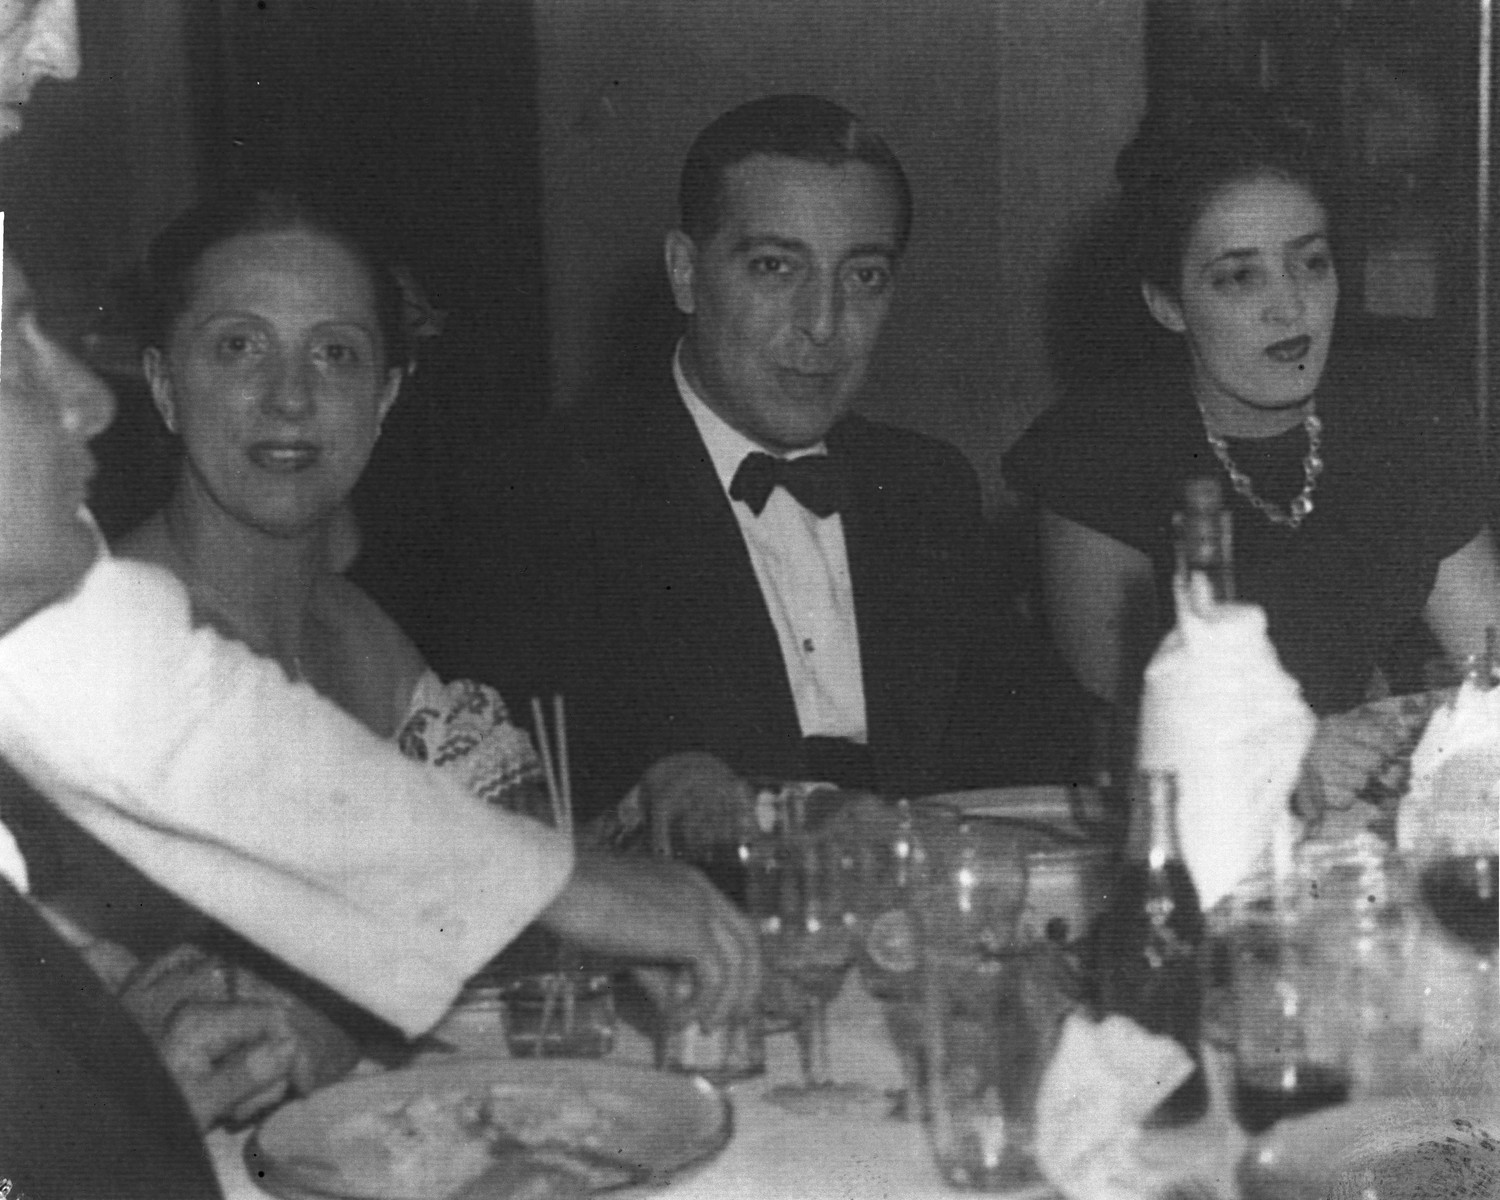 Portuguese diplomat Carlos de Liz-Texeira Branquinho at a dinner party.